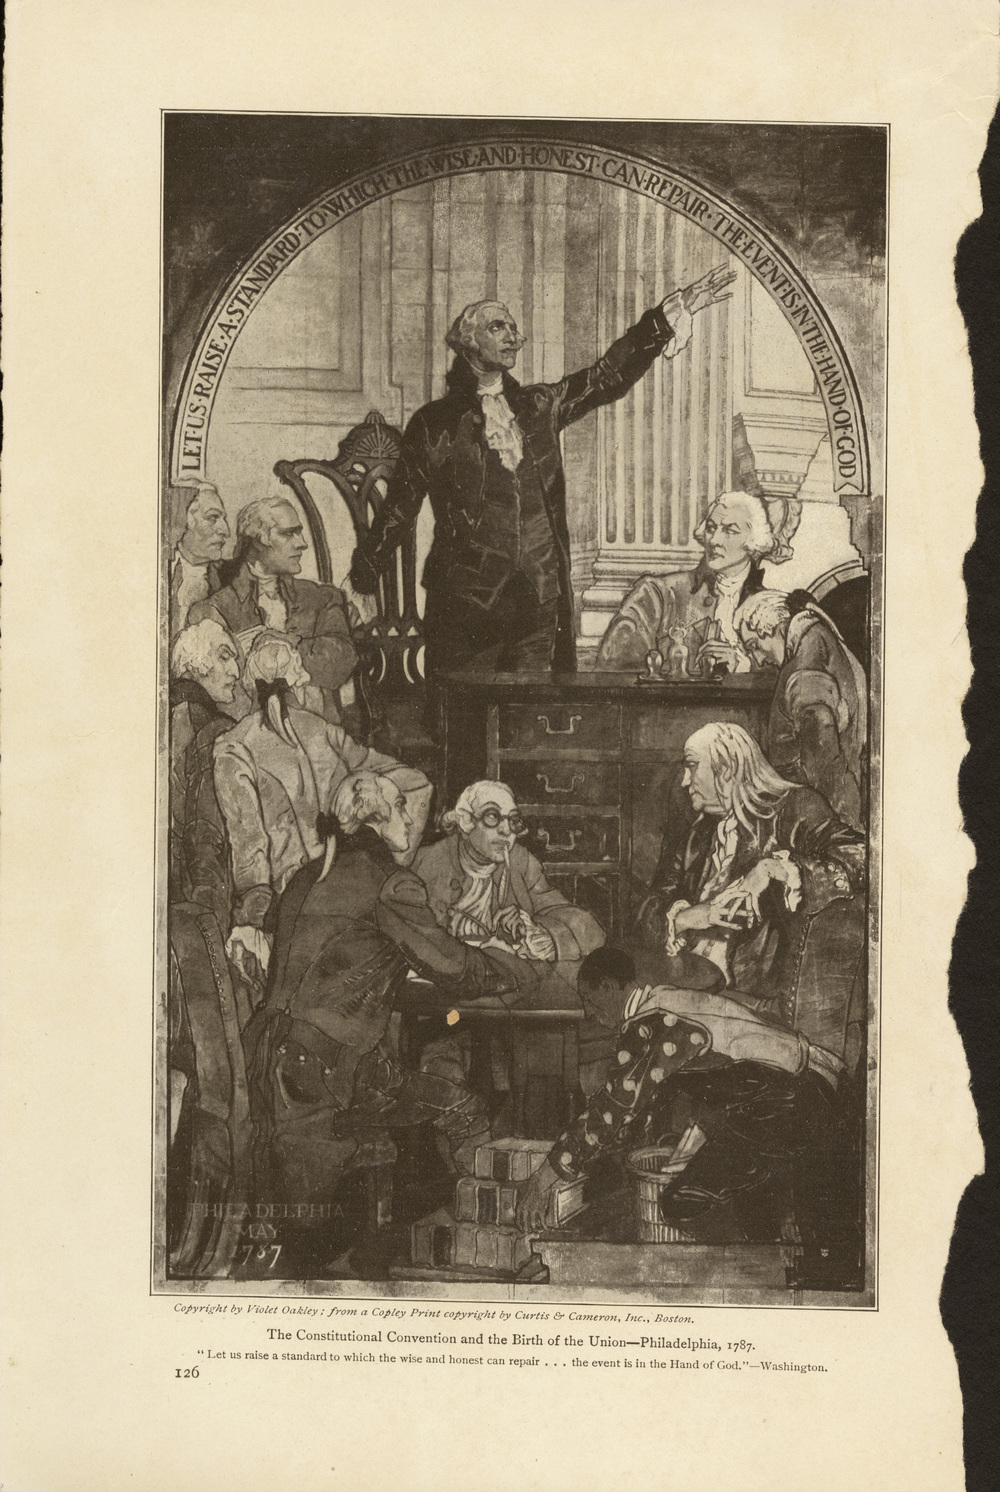 Violet Oakley, T he Constitutional Convention and the Birth of the Union . Senate Murals, Pennsylvania Capitol Building. Dedicated in 1917.   The images shown here were torn from a promotional booklet published by the State of Pennsylvania about Oakley's murals.